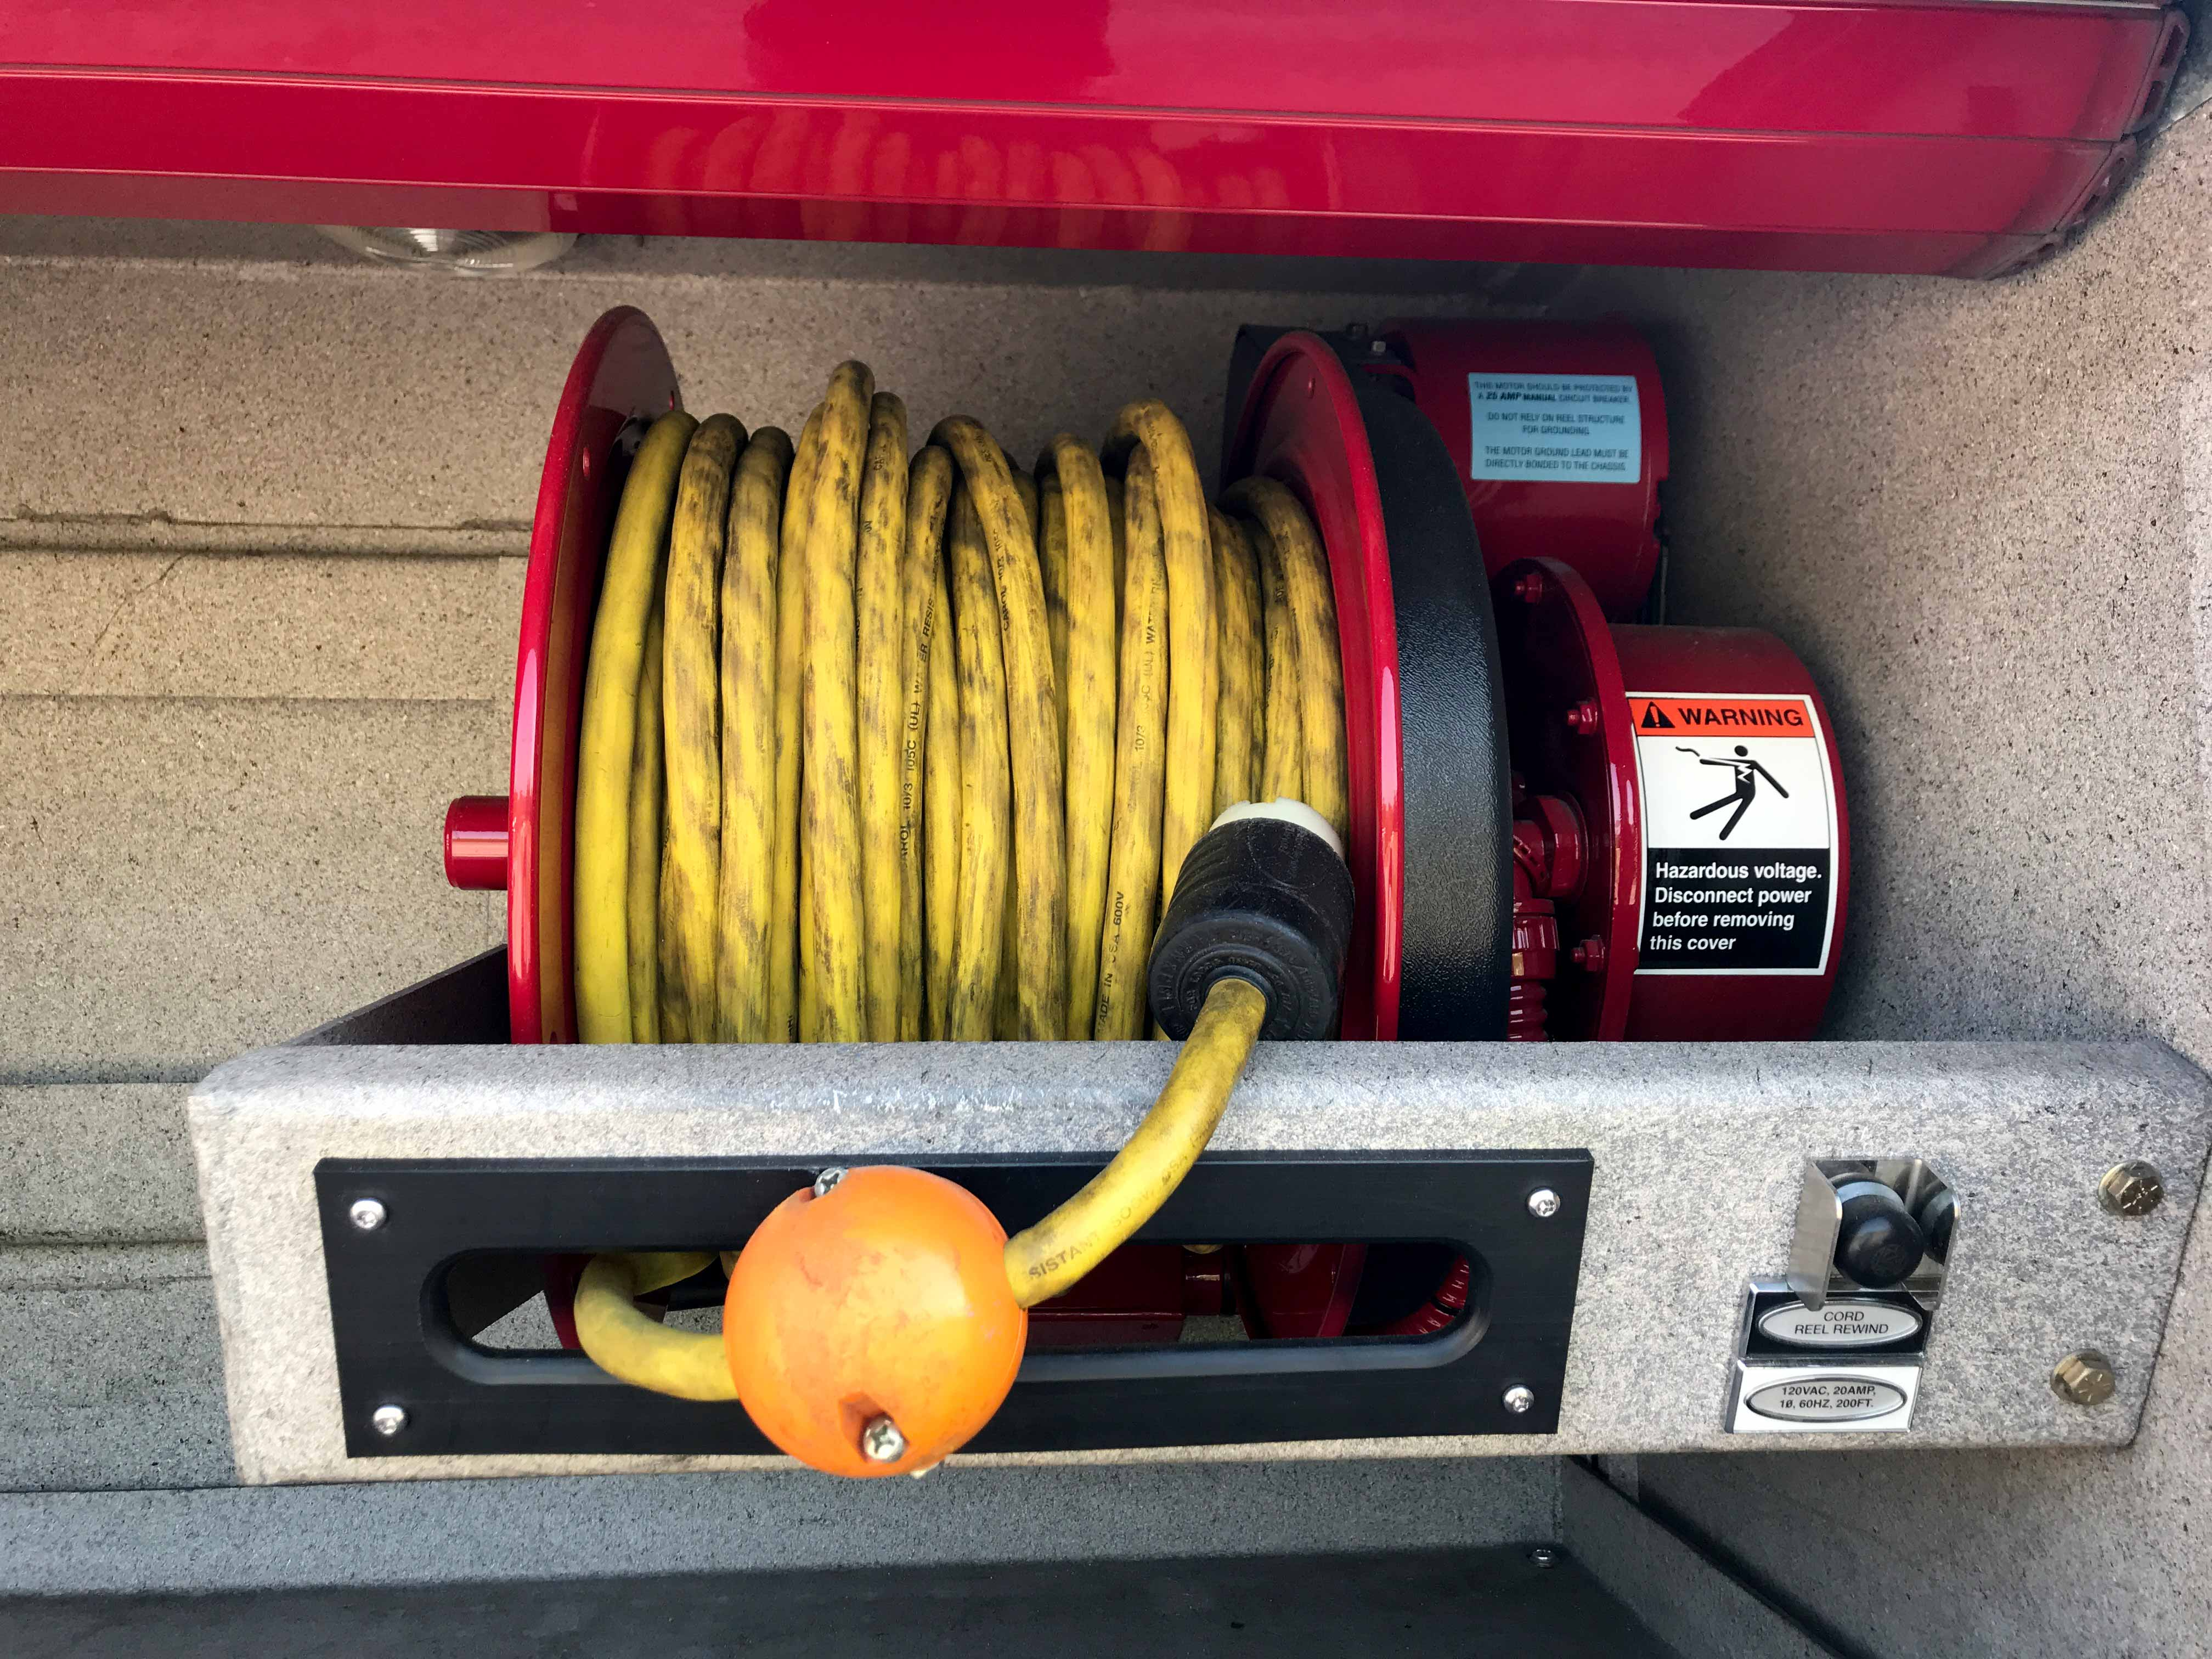 2007 Pierce Velocity Rescue Pumper Used Truck Details 120vac Disconnect Wiring Image